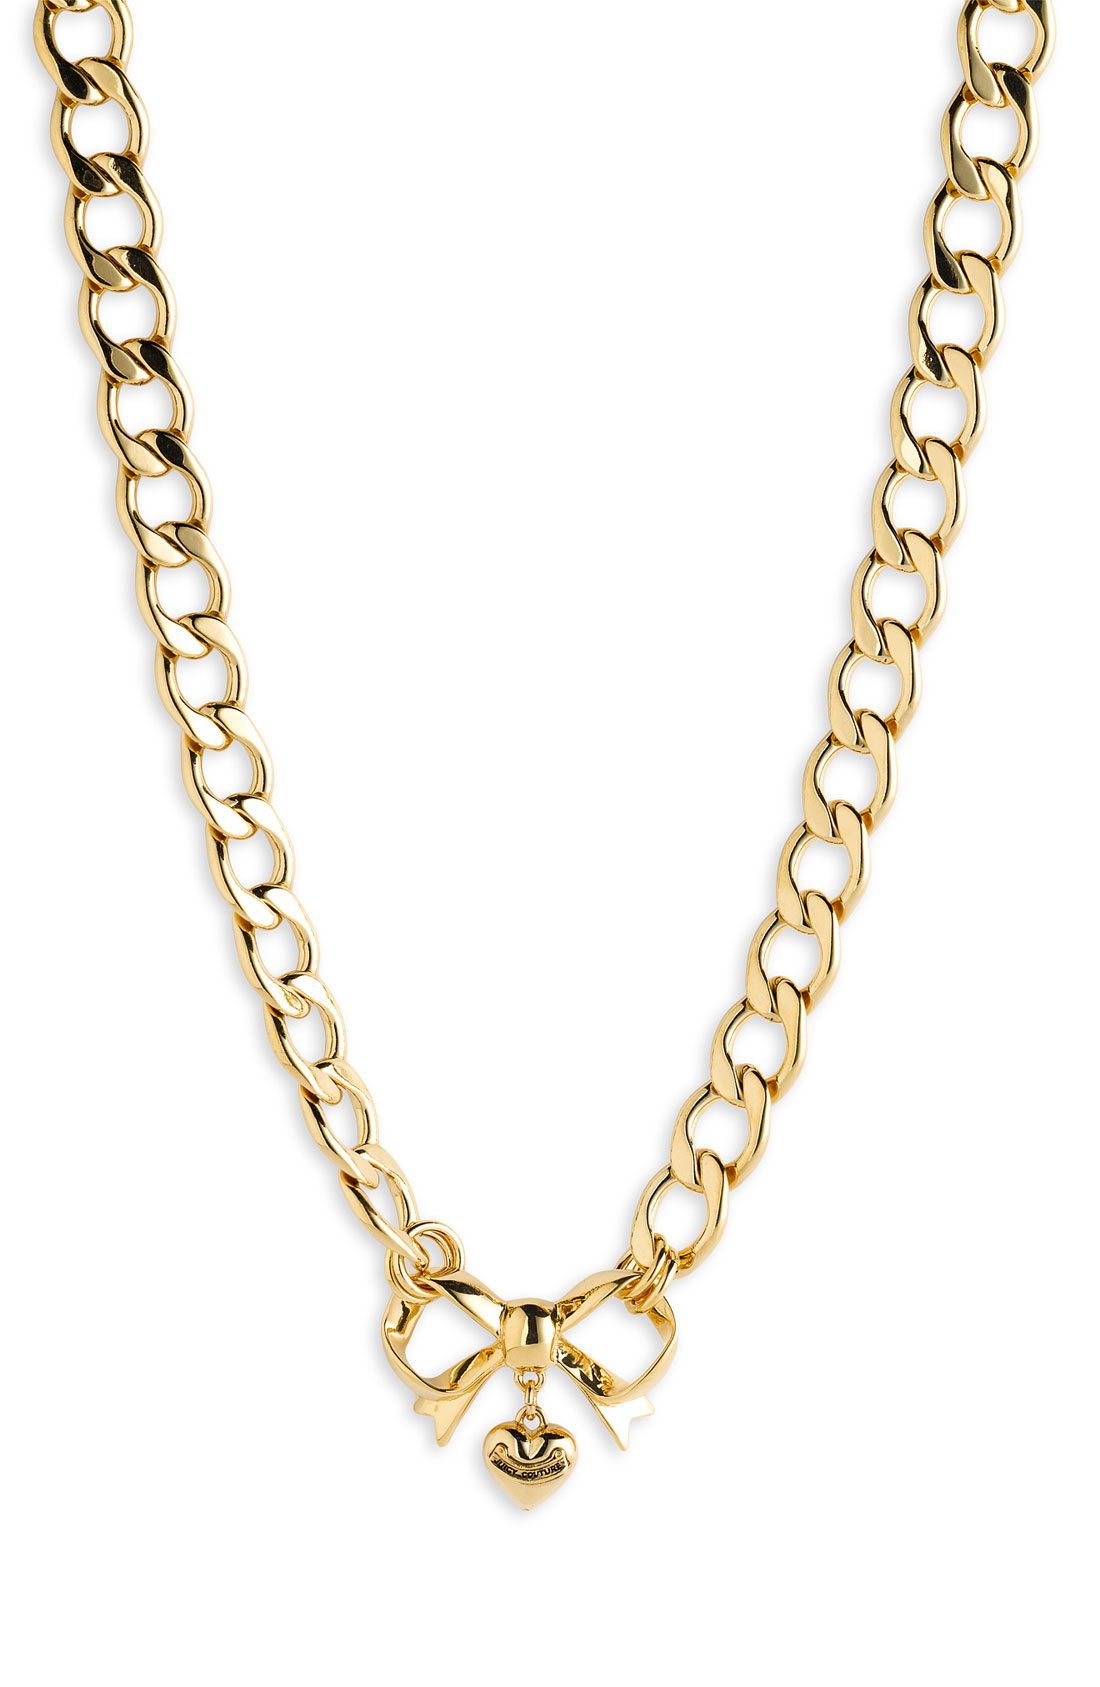 Juicy Couture Bow Starter Charm Necklace in Gold | Lyst